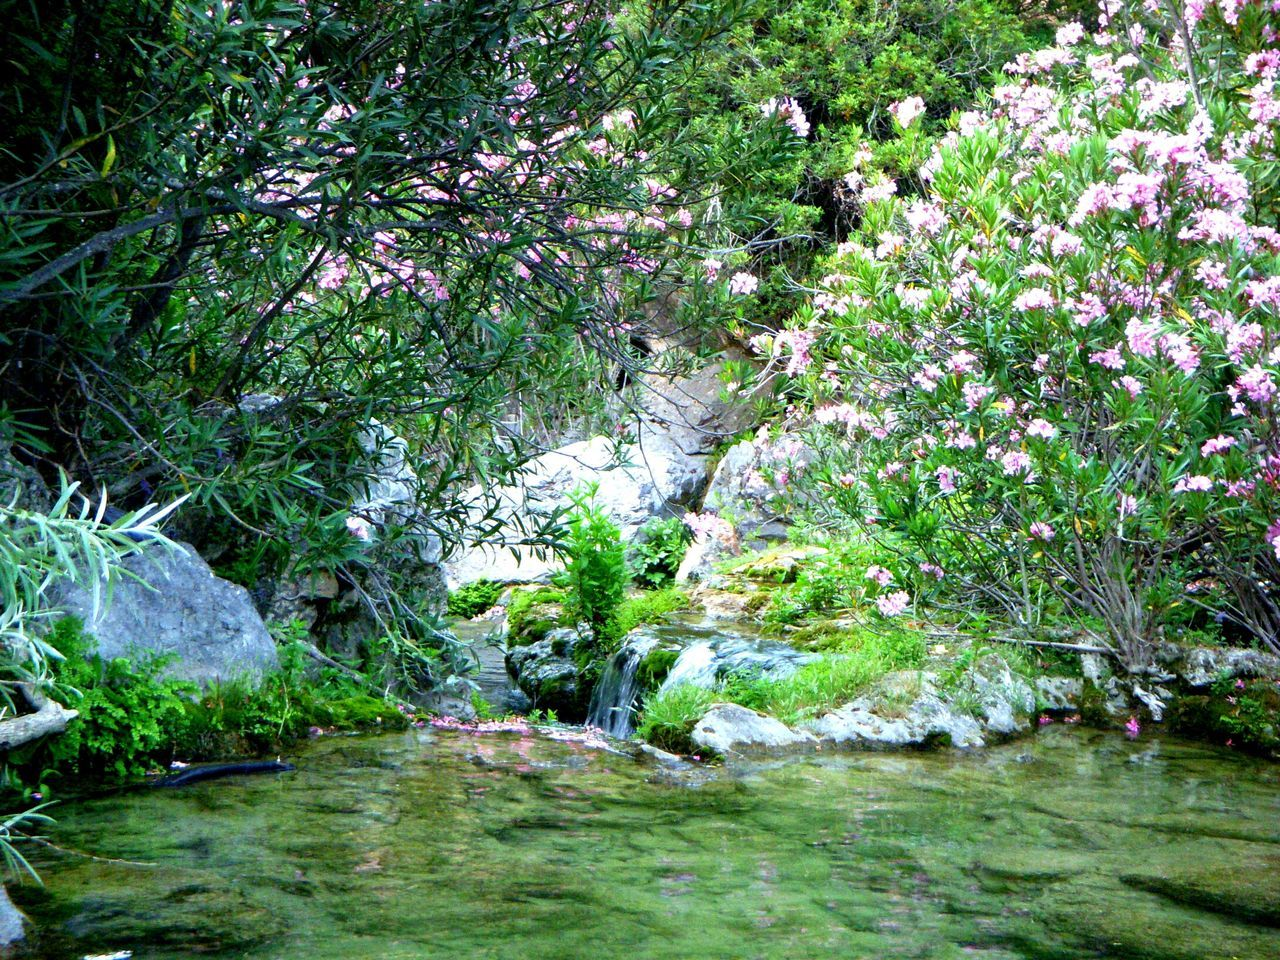 nature, water, growth, tranquility, waterfall, beauty in nature, tree, no people, forest, plant, outdoors, grass, day, flower